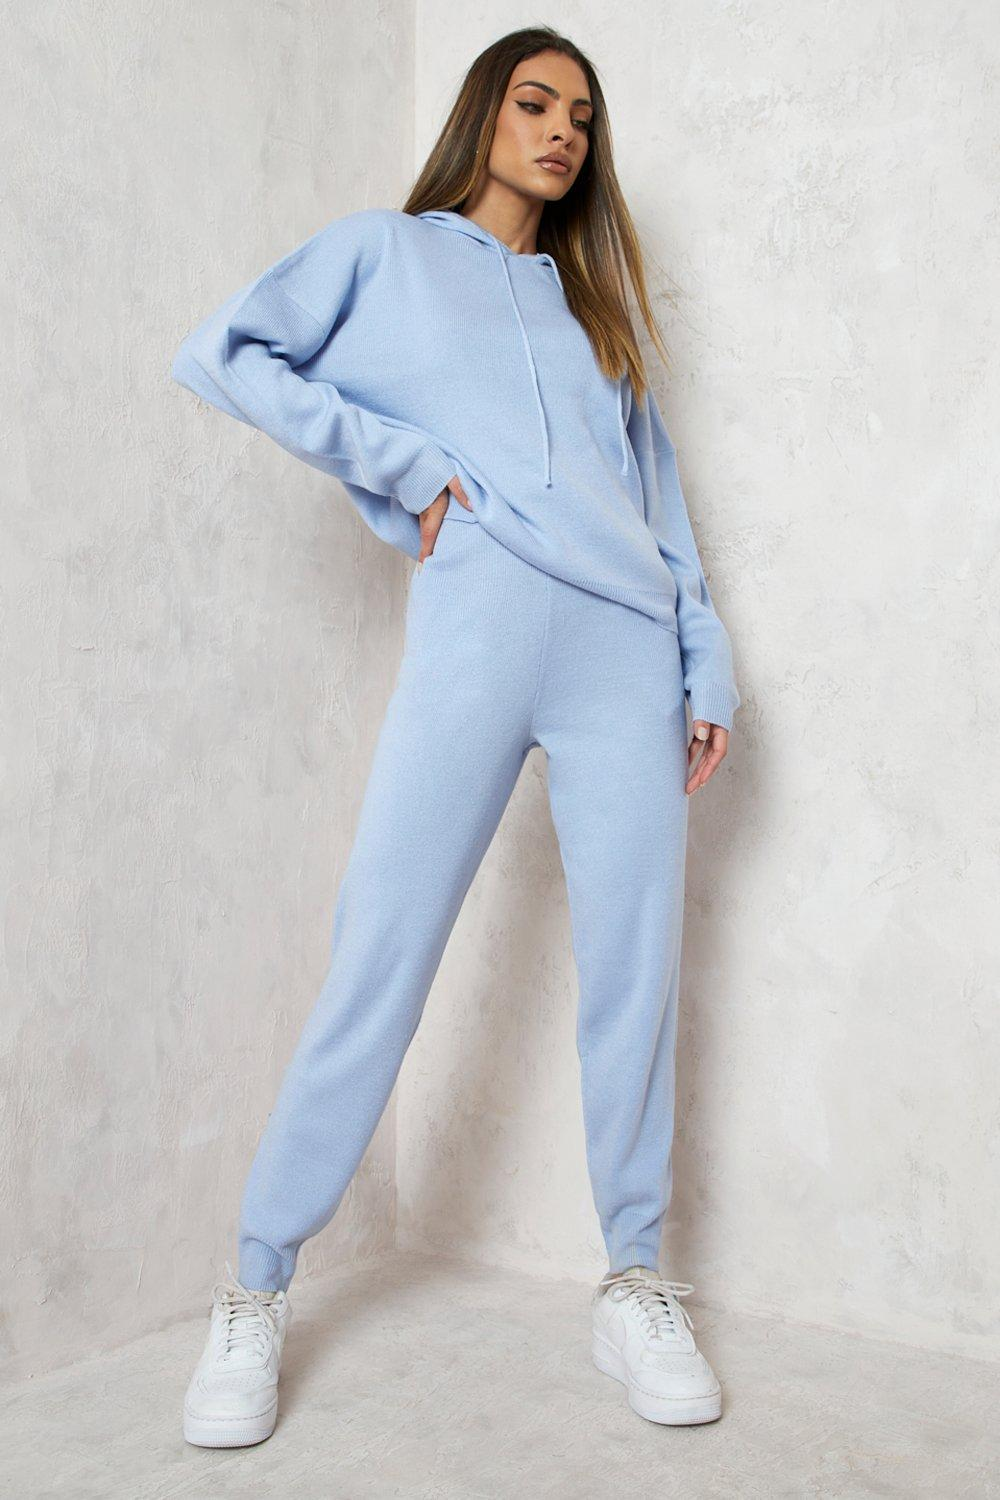 Co Ord Sets Hoody Knitted Lounge Set